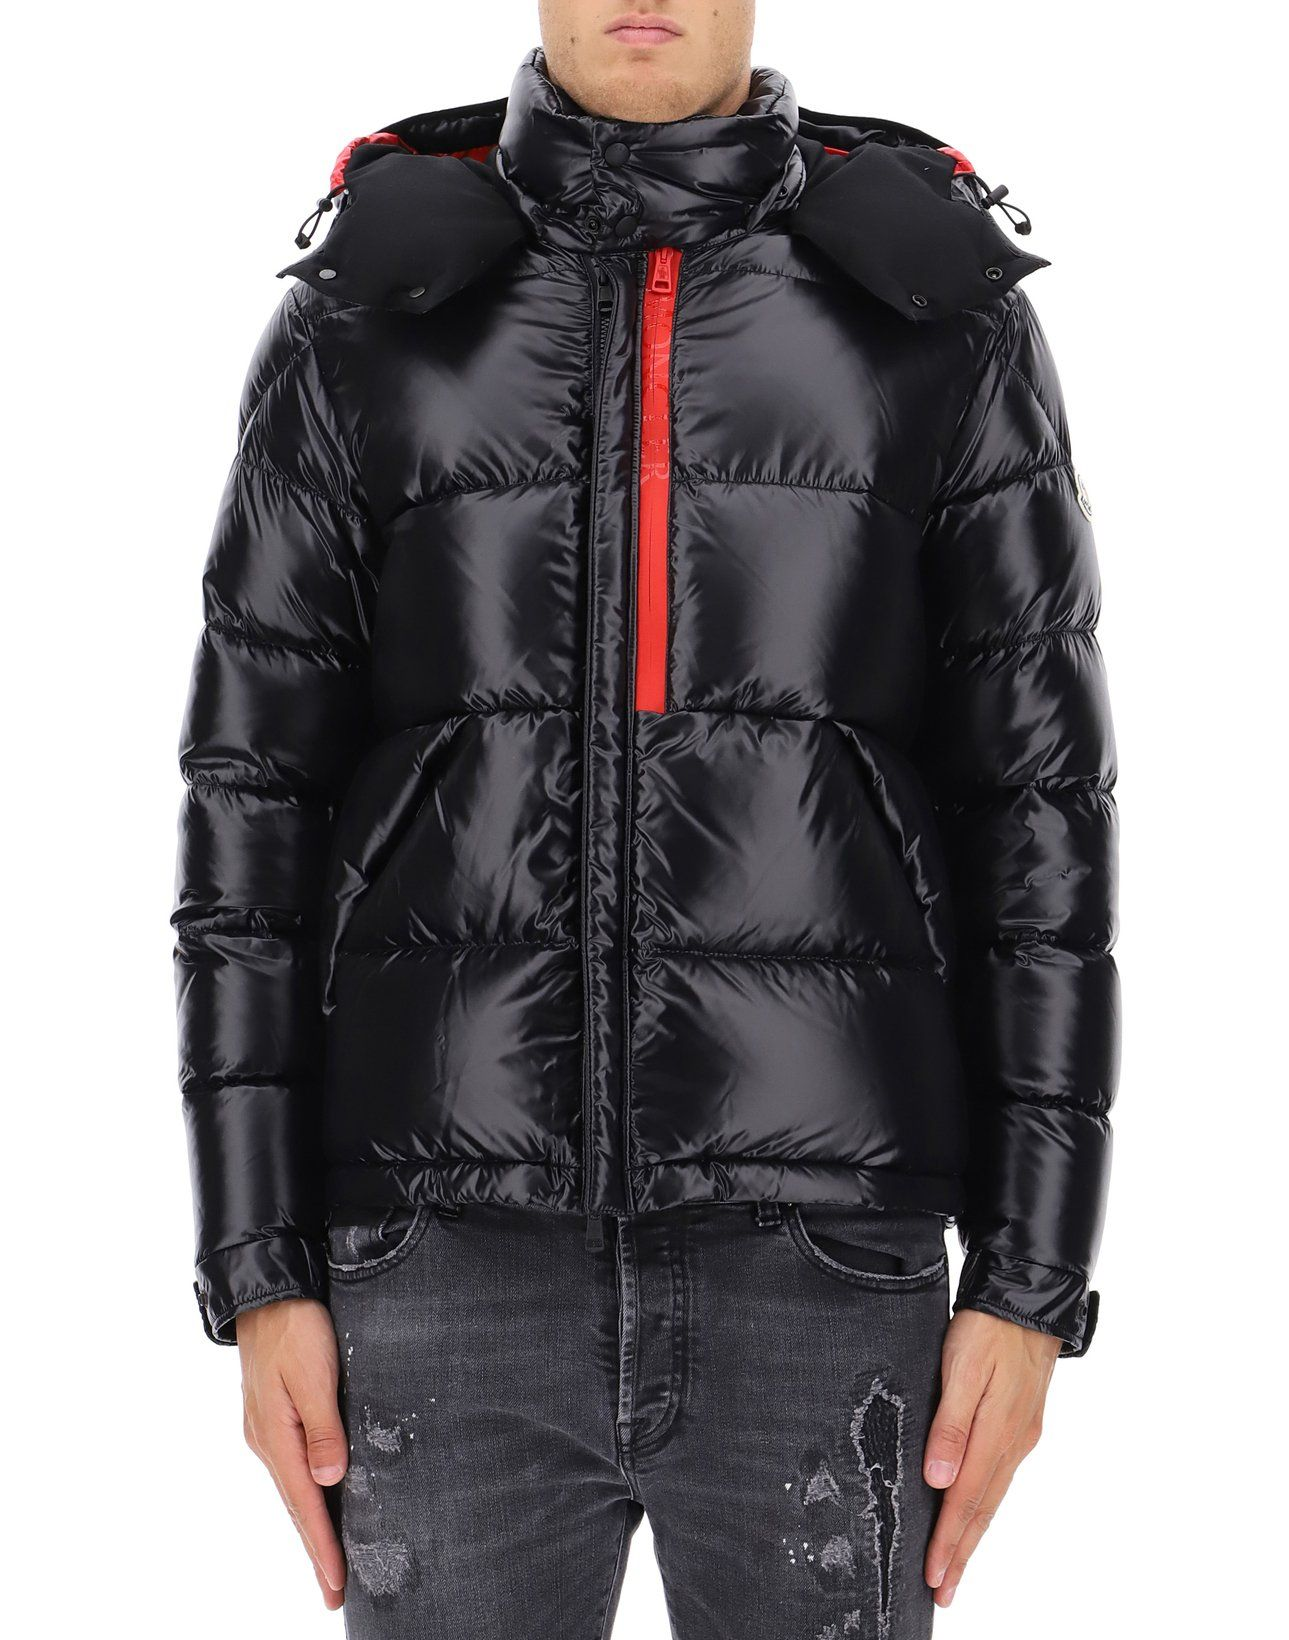 Moncler Moncler Marlioz Quilled Jacket Moncler Cloth Jackets Moncler Cool Jackets [ 1640 x 1289 Pixel ]